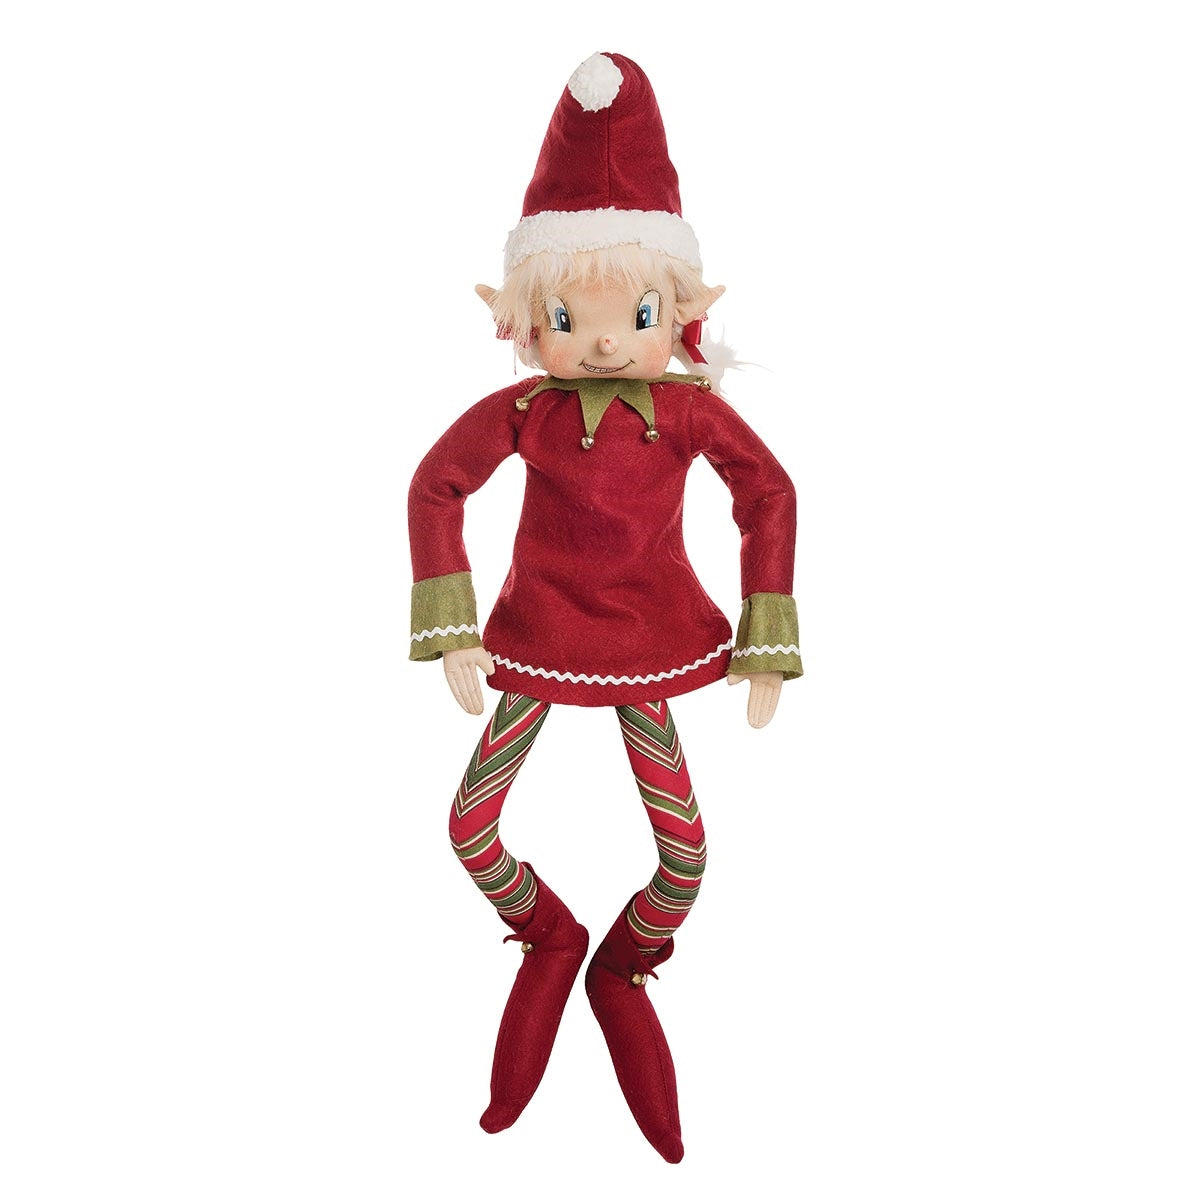 Joe Spencer Aggie Elf Doll - Christmas 2019